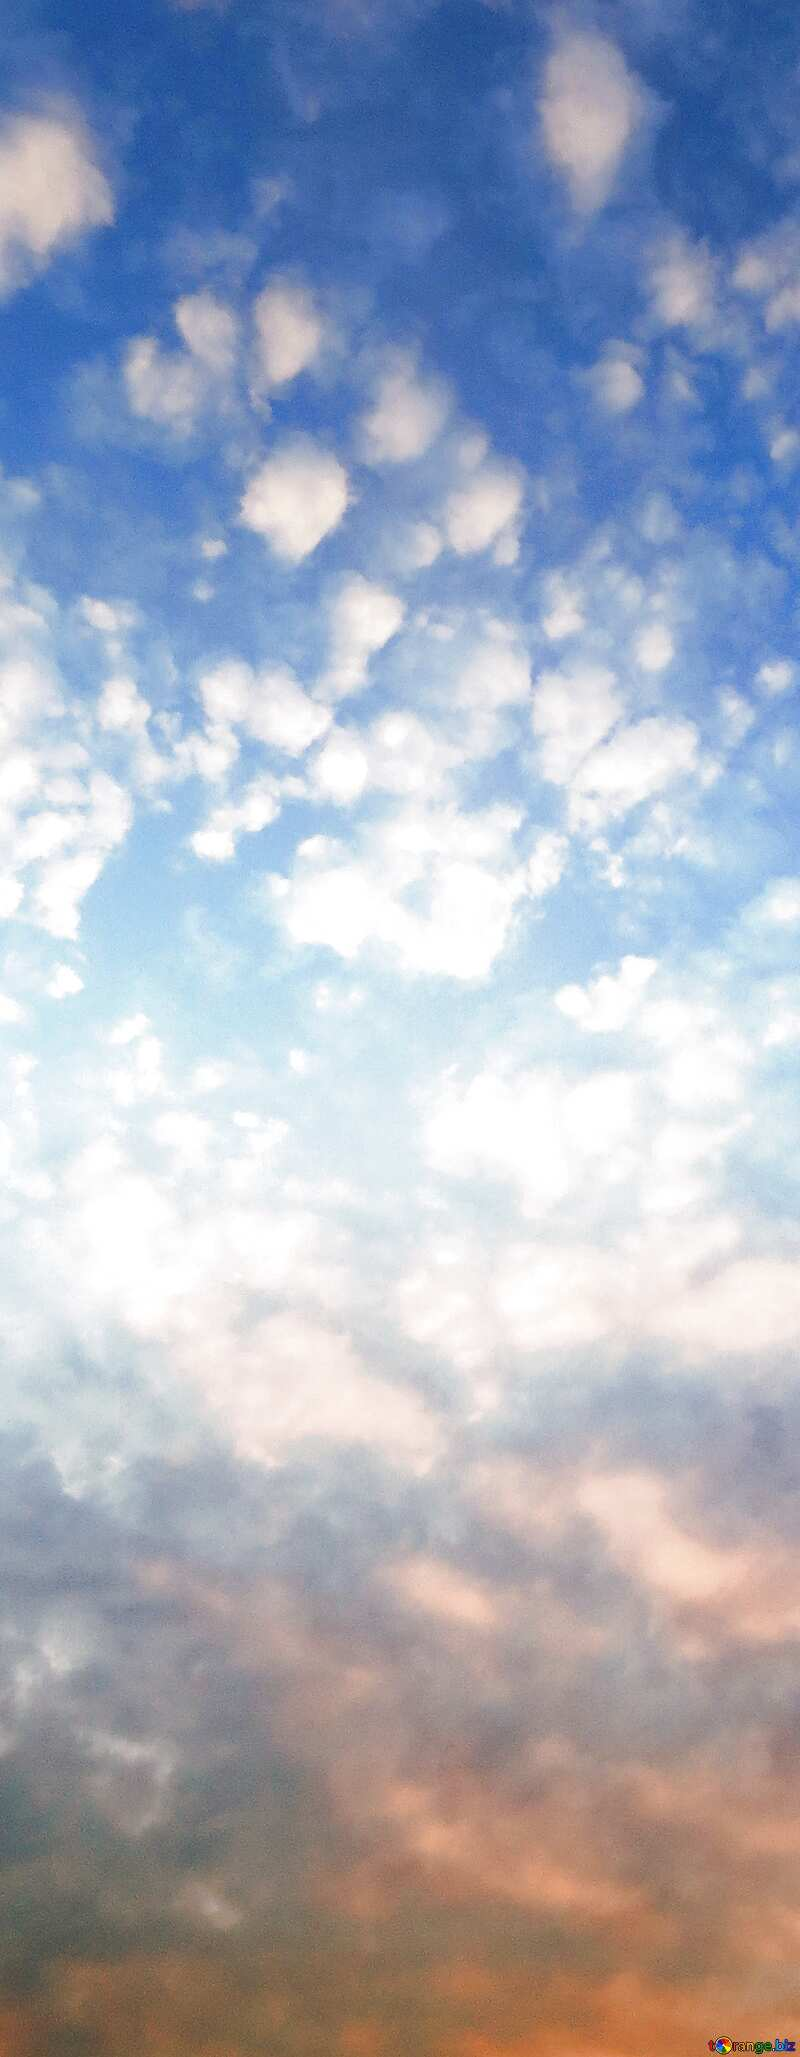 Beautiful sky vertical banner background №22651